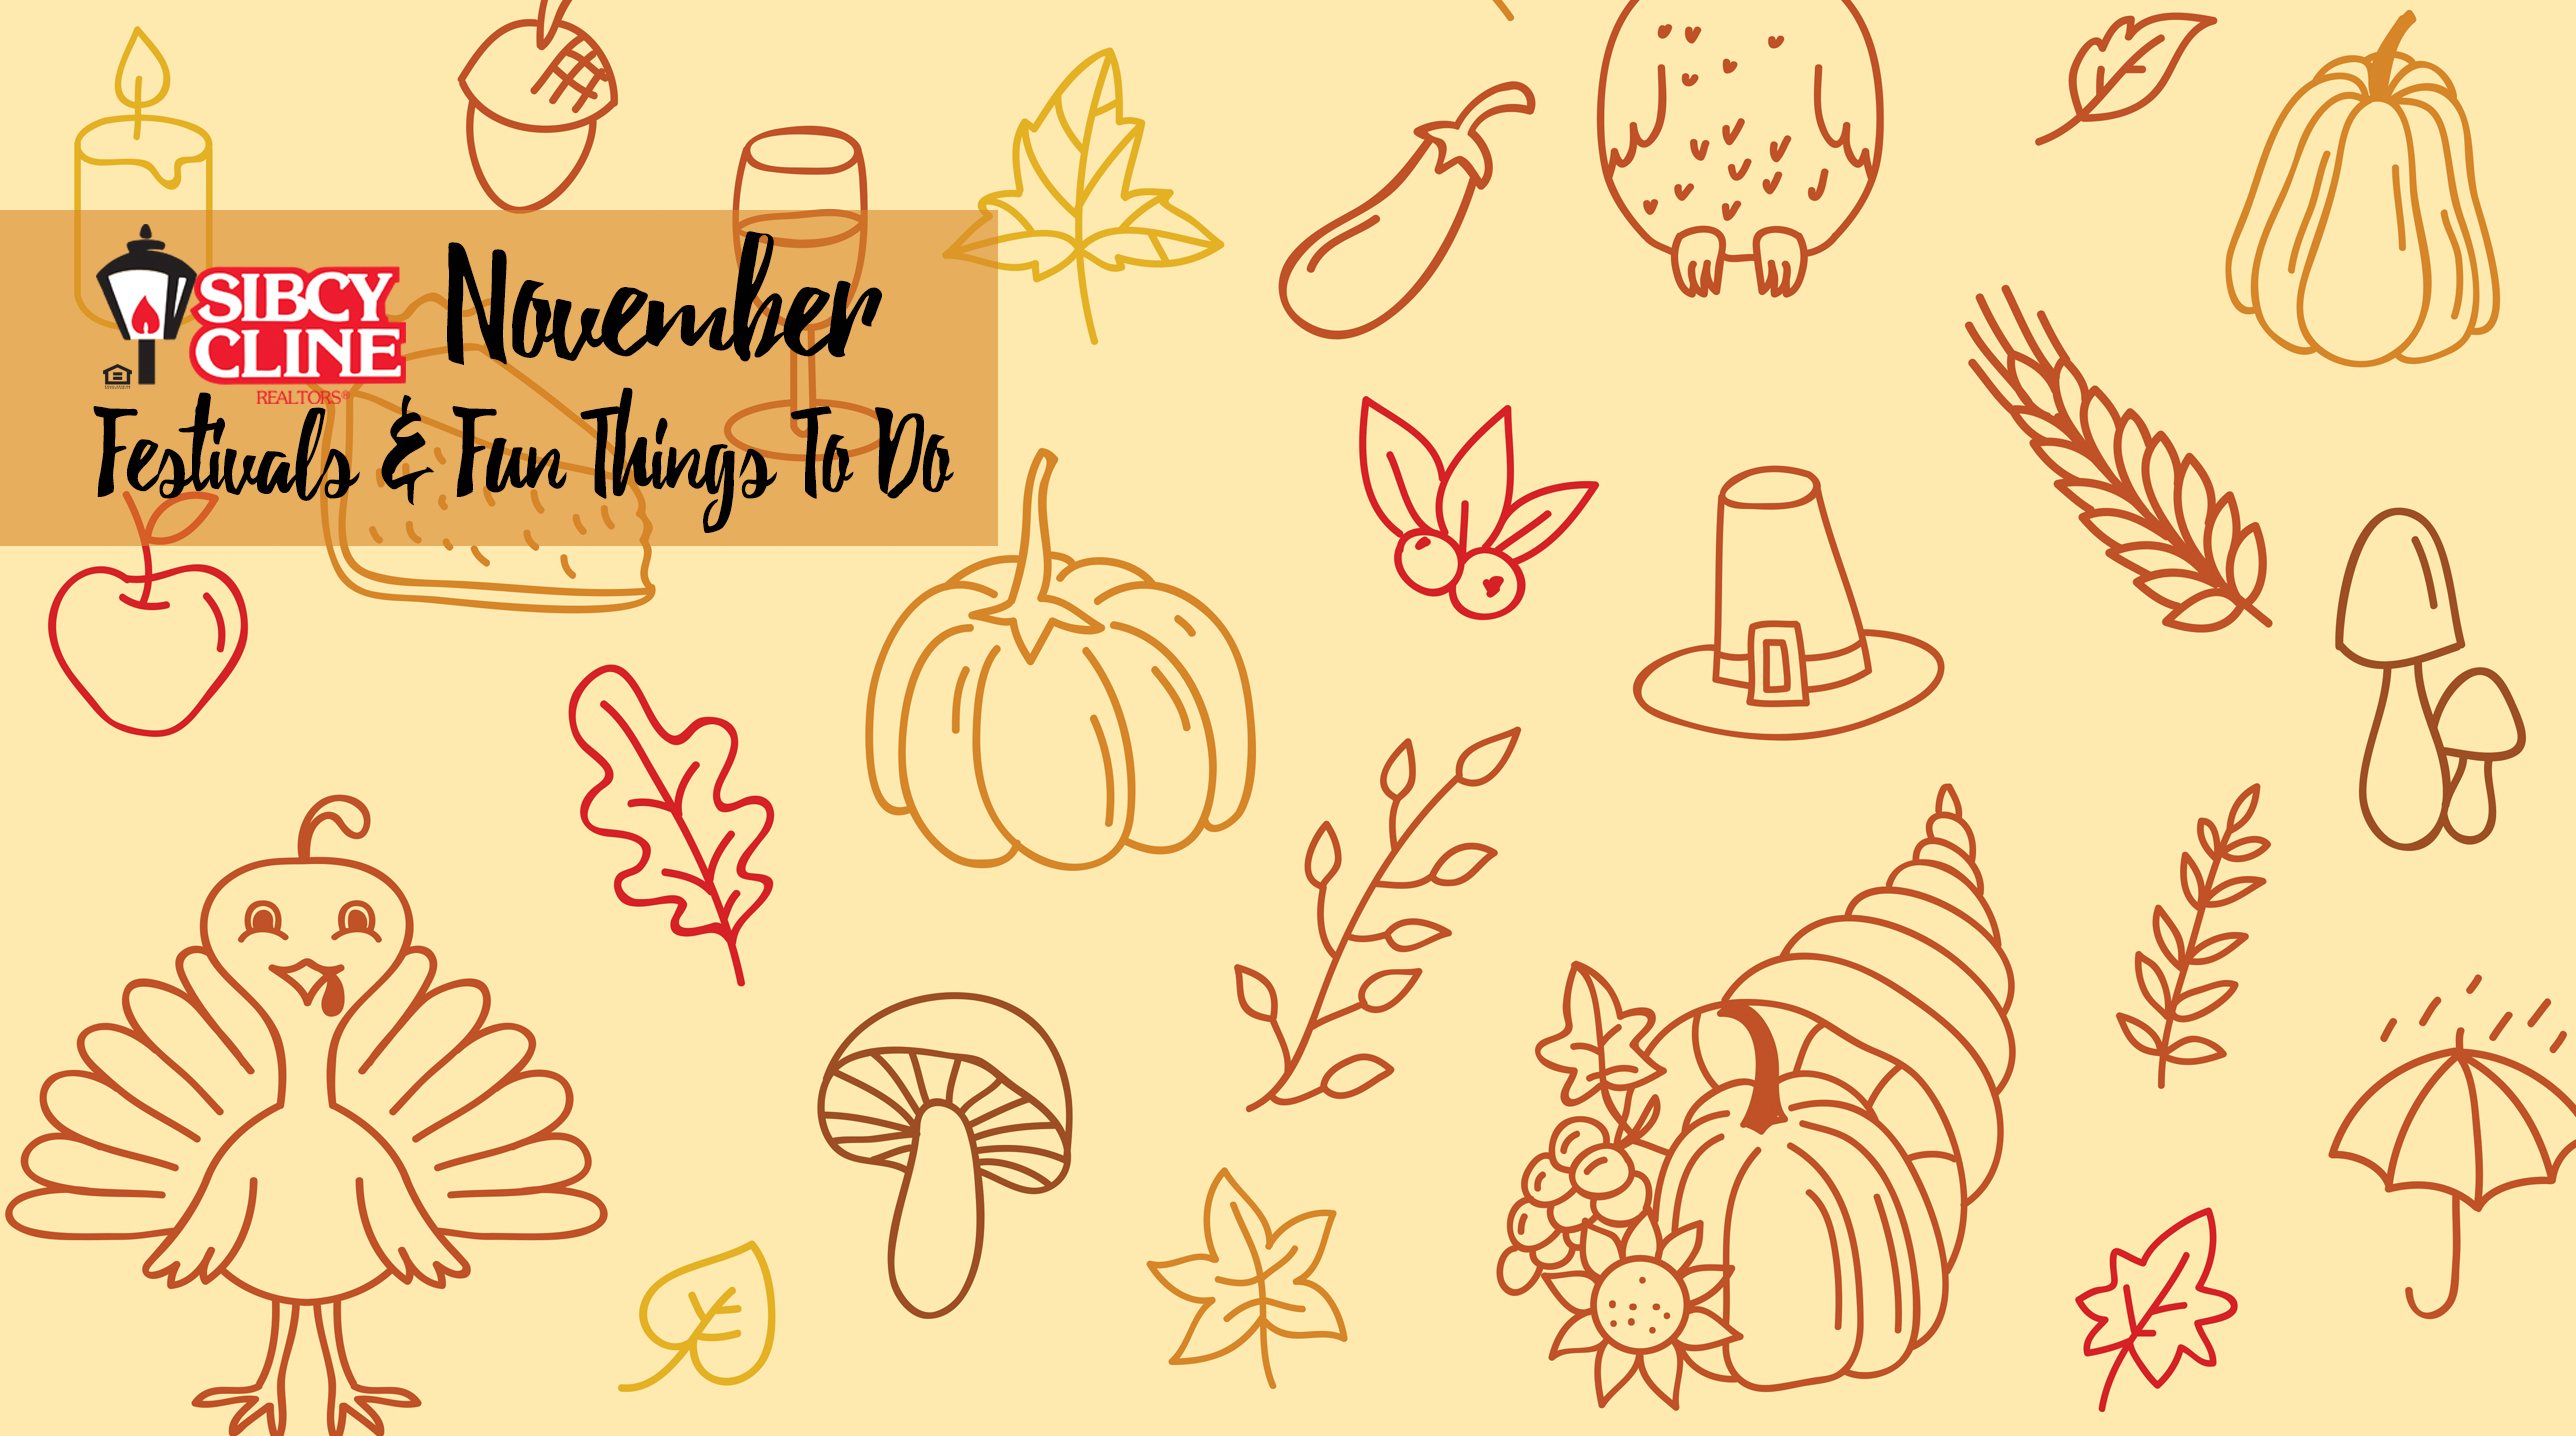 Clipart factory dayton ohio clip download November Fun Things to Do throughout Cincinnati and Dayton, Ohio ... clip download